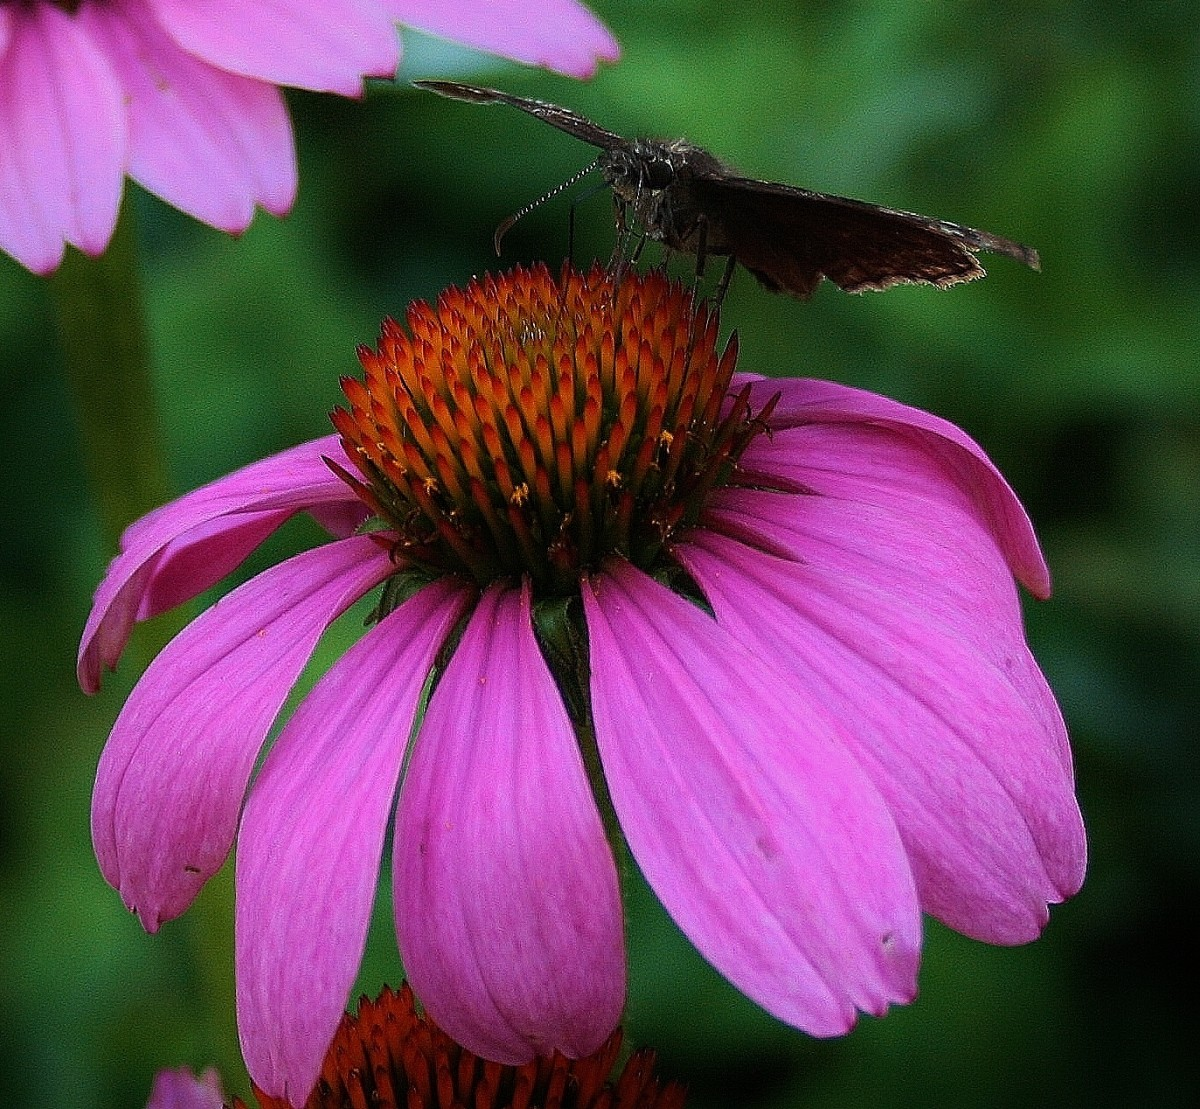 Purple coneflower (Echinacea), often grown as a cutting flower in home gardens, may also be cultivated for the medicinal properties of its roots.